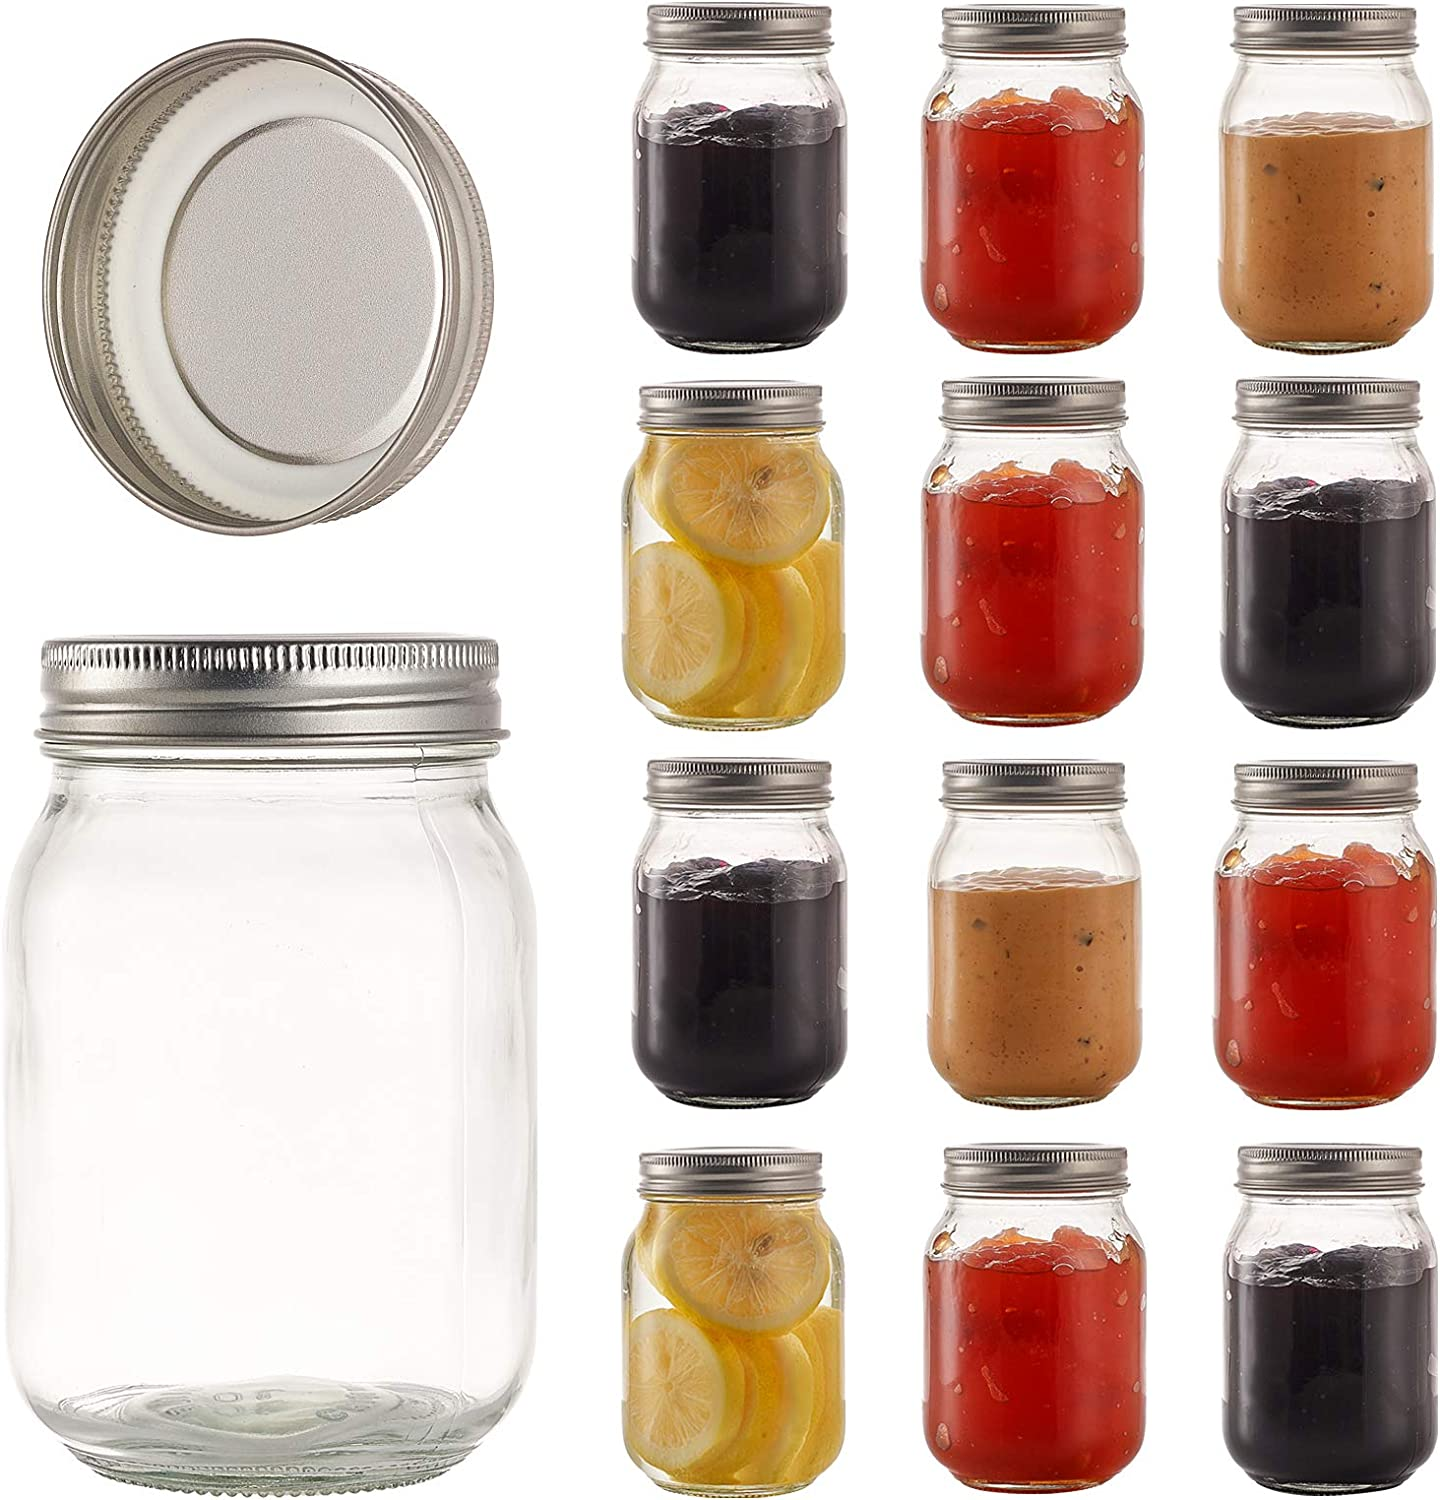 RESYOTE 16oz Mason Jars Airtight Container for Food Storage Ideal For Dry Food, Peanut Butter, Honey, Jam, DIY, Crafts with Silver Lids Airtight Metal Caps, Set of 12